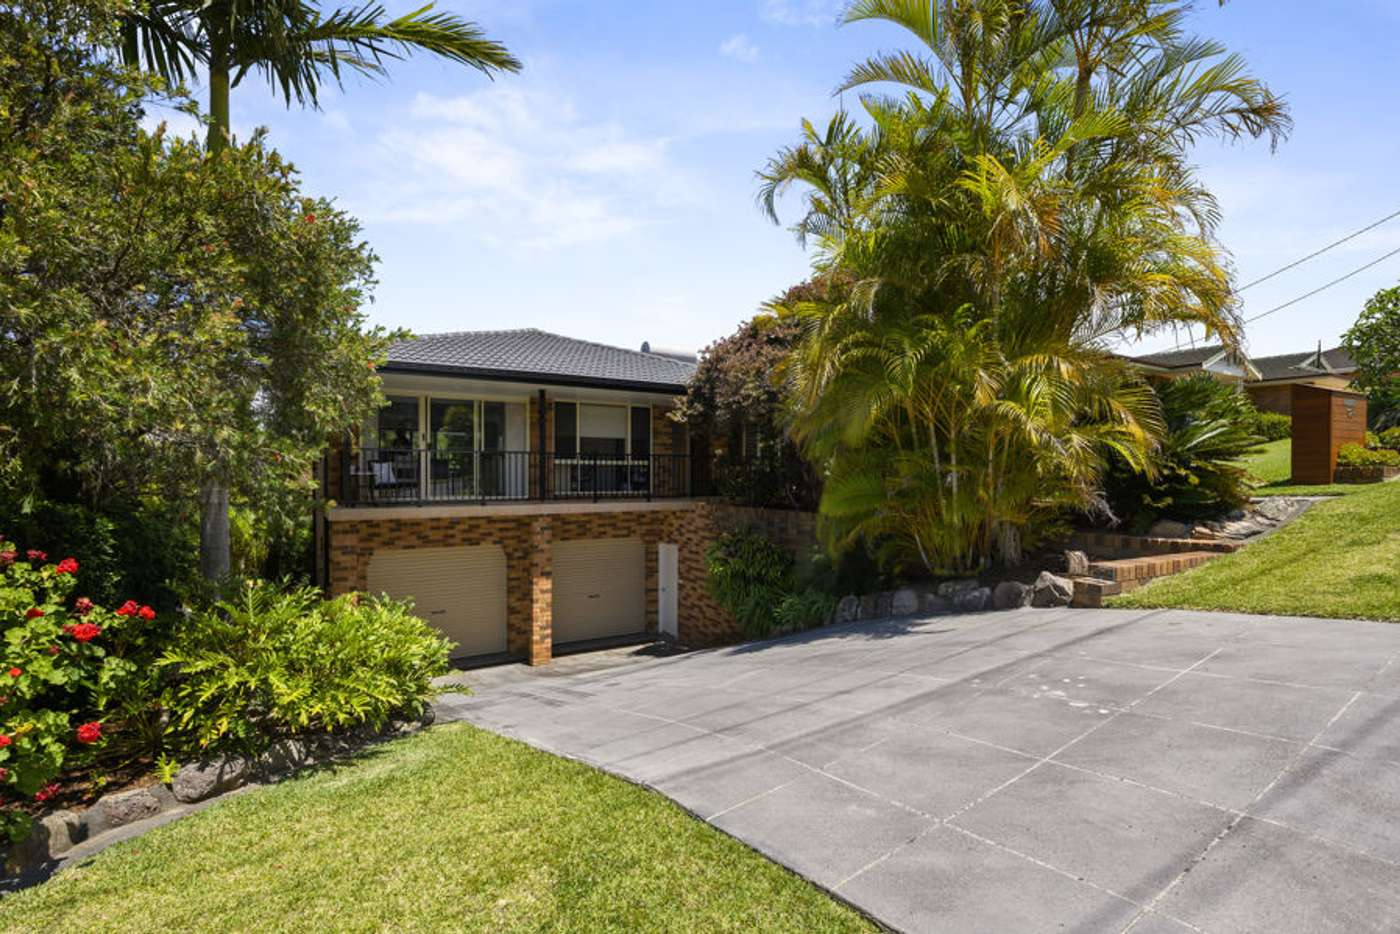 Main view of Homely house listing, 12 Canomie Street, Sapphire Beach NSW 2450